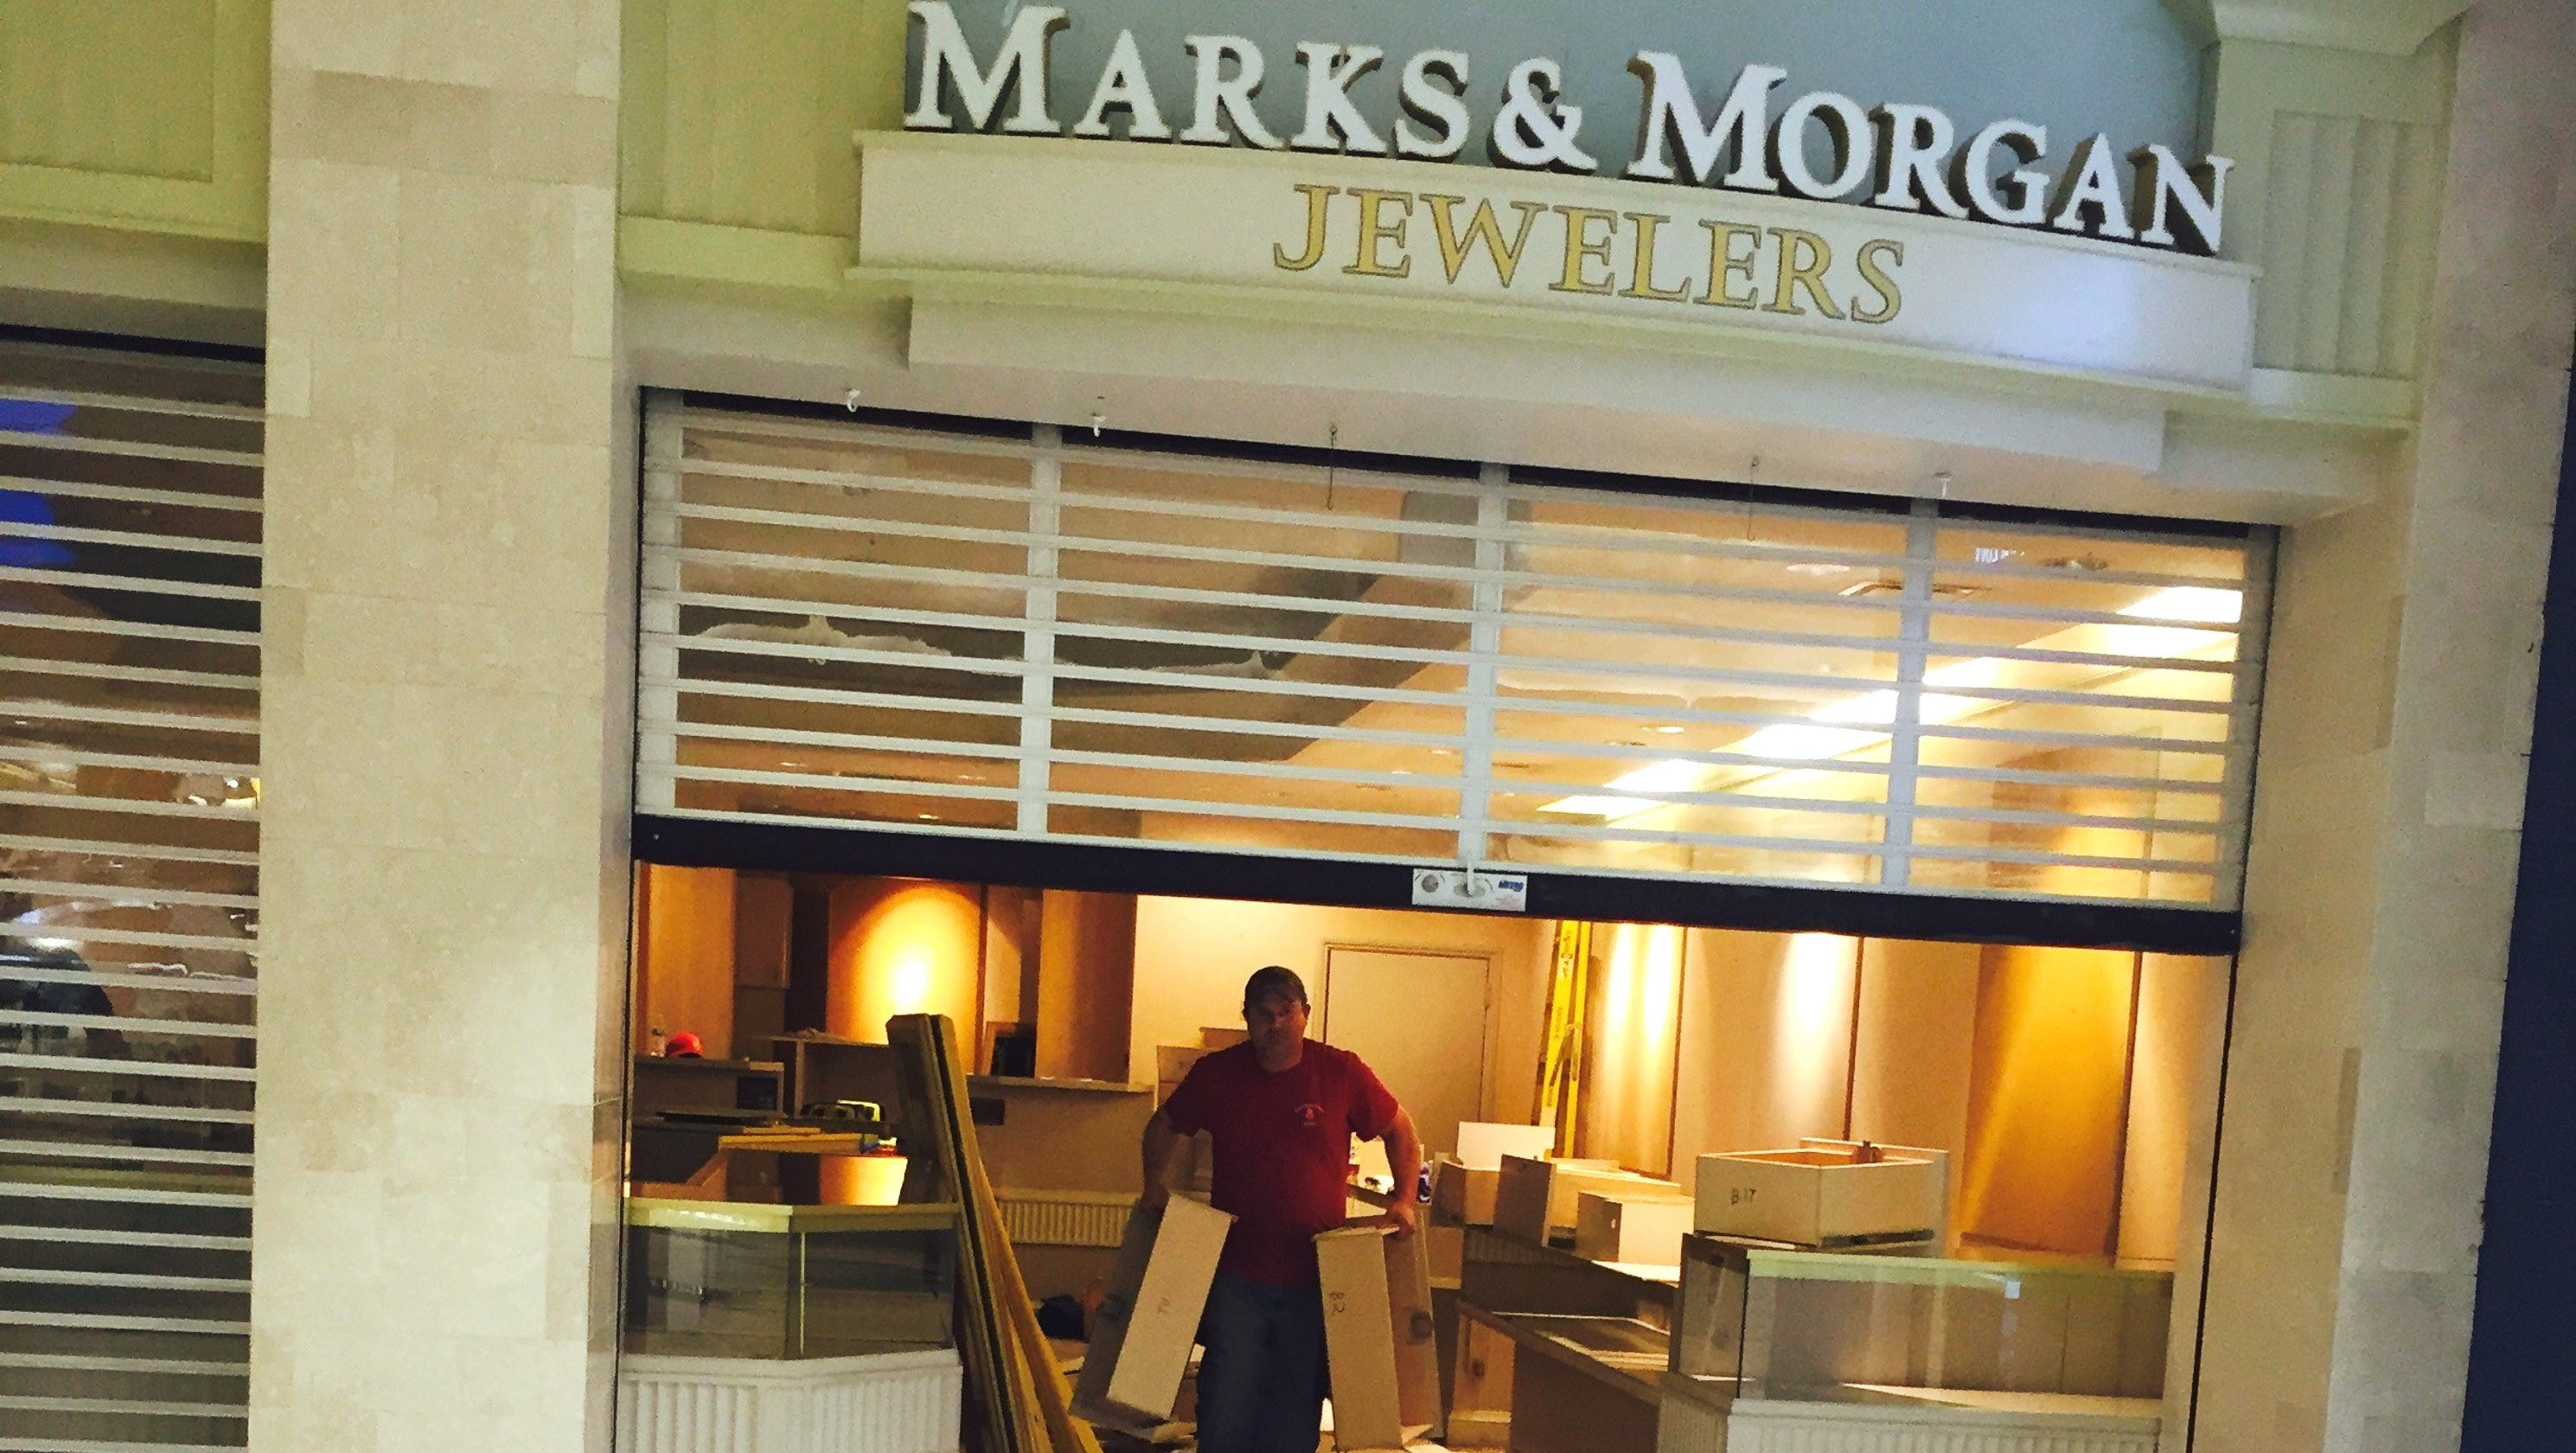 a48ff6e0b79 Marks & Morgan Jewelers closes in West Town Mall